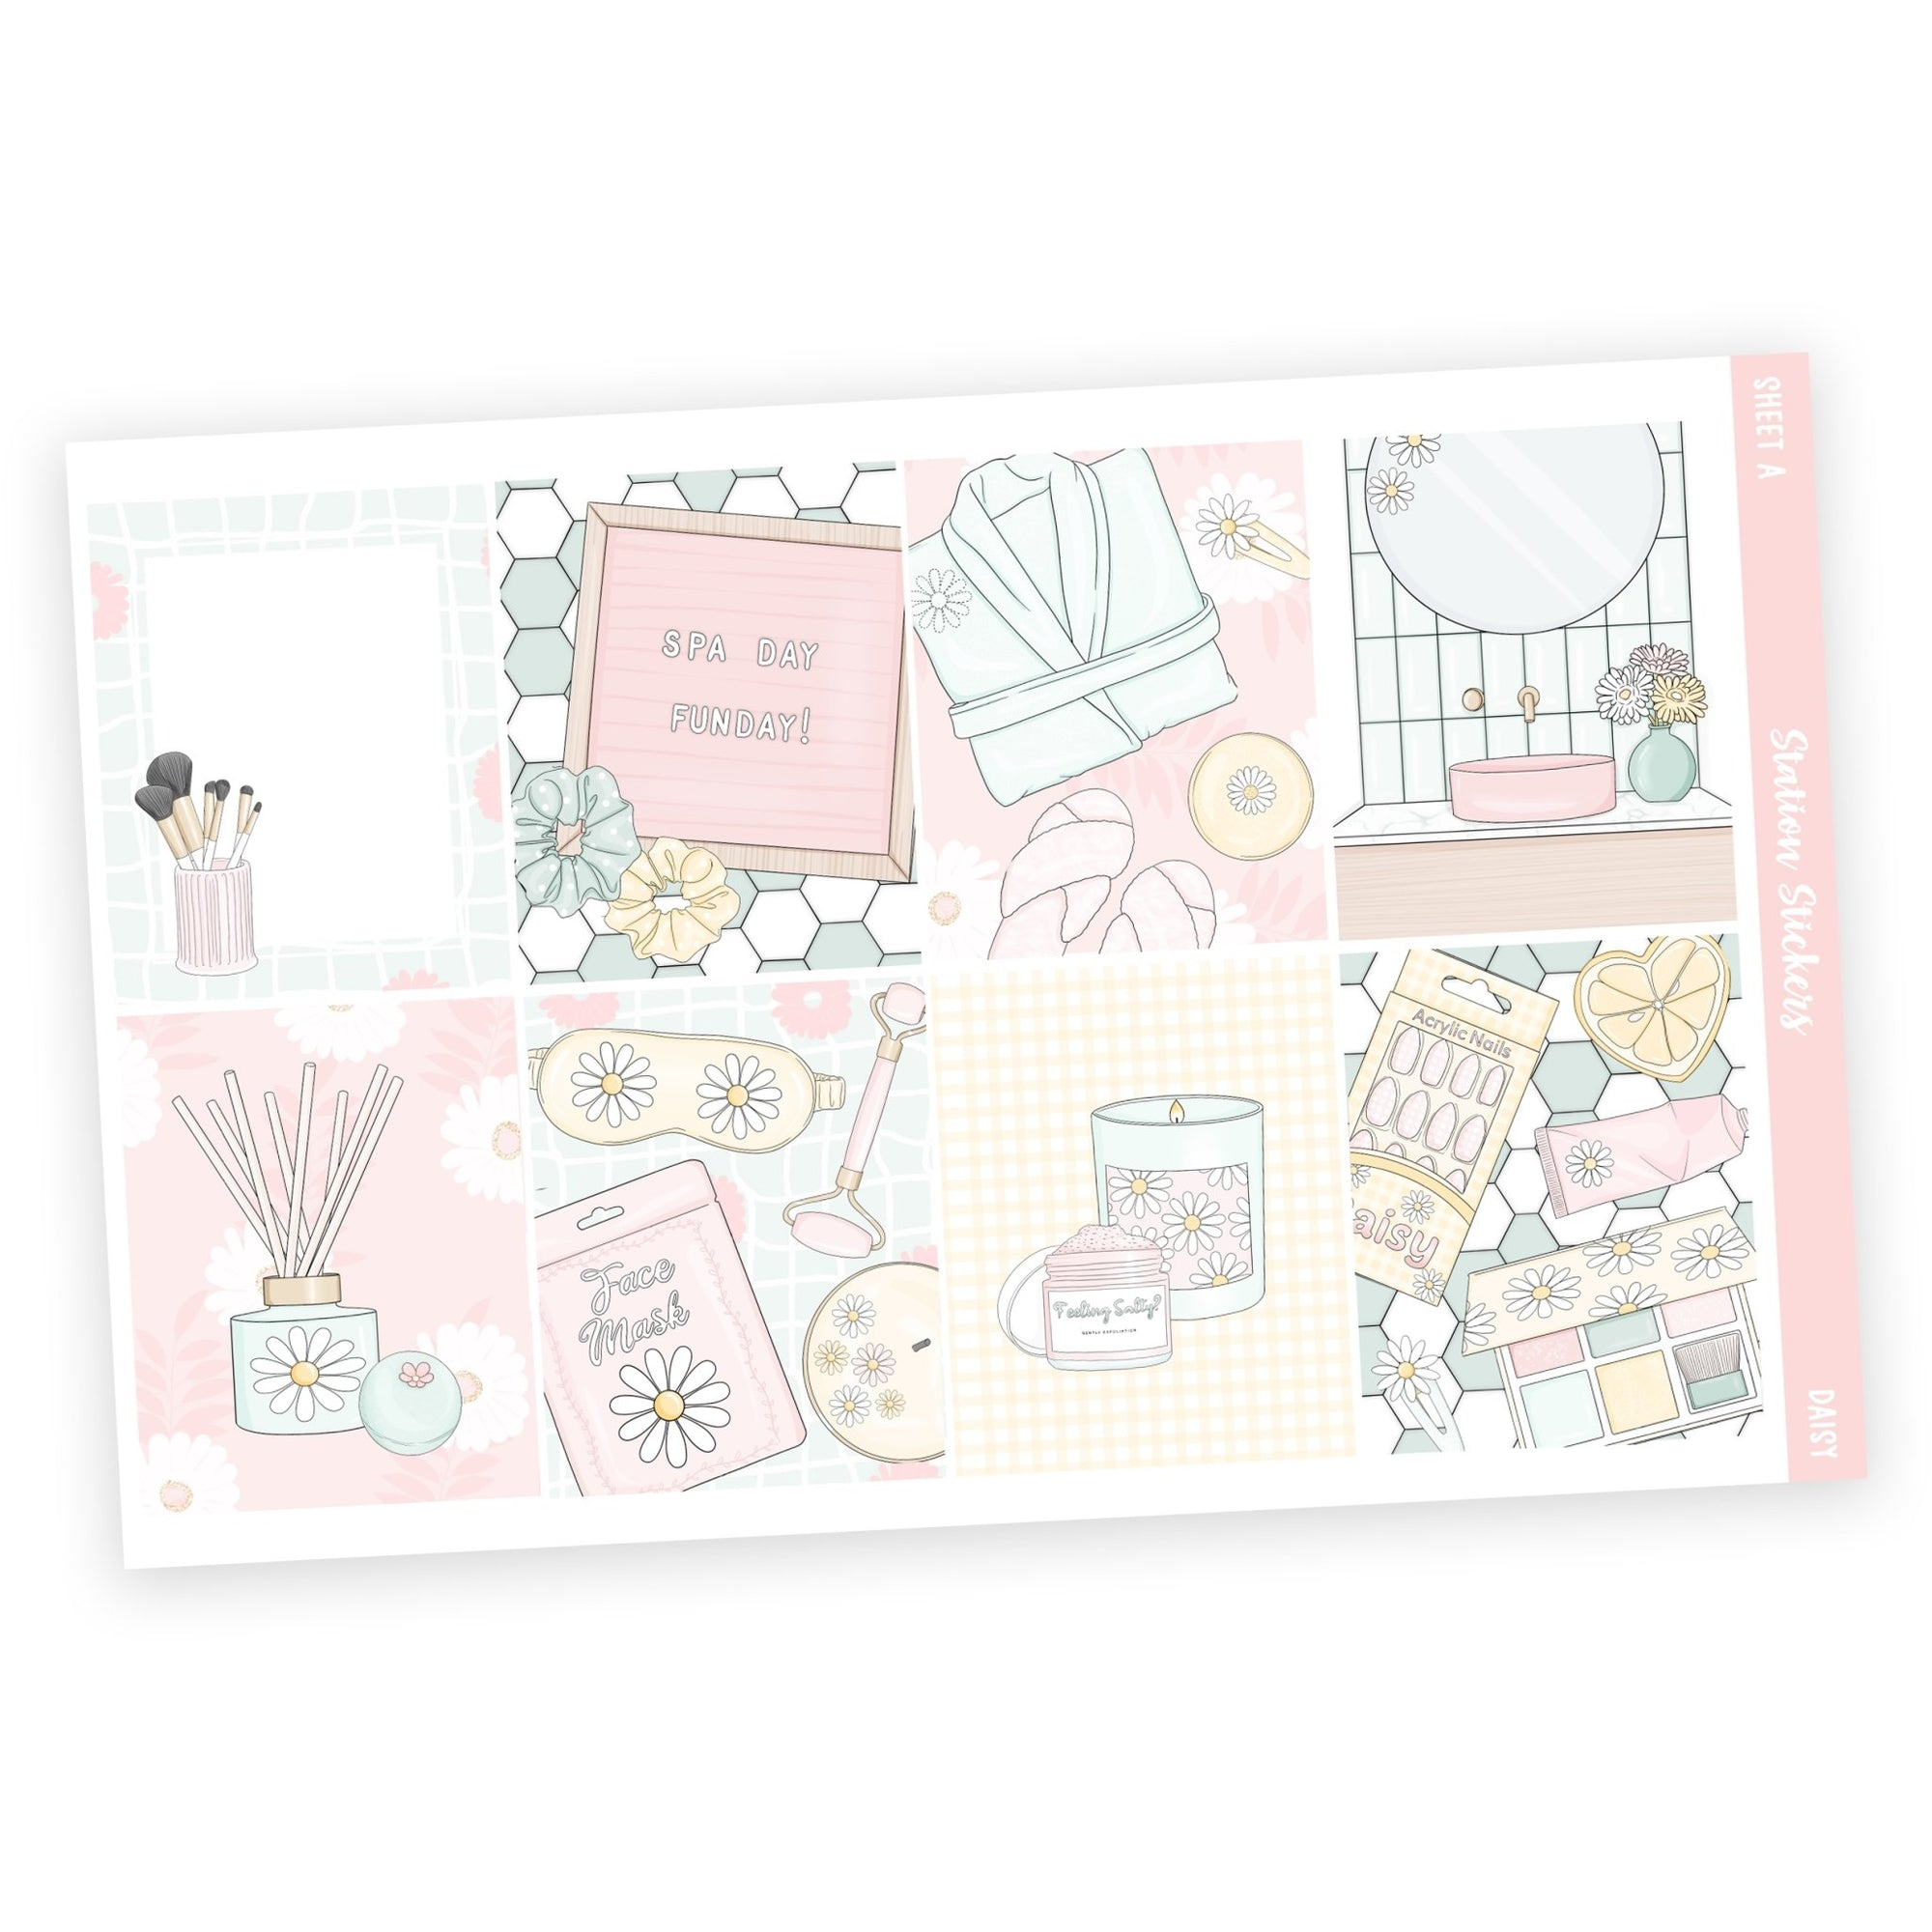 WEEKLY STICKER KIT • DAISY - Station Stickers